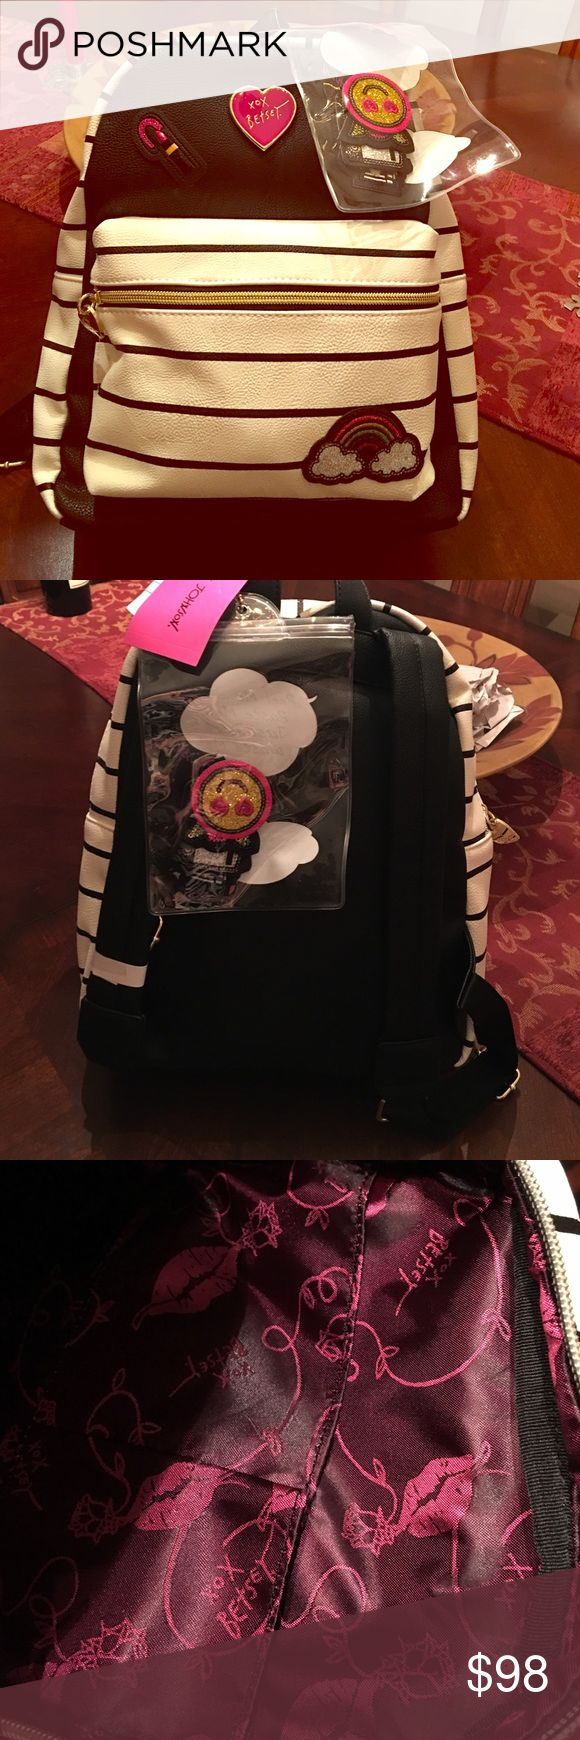 🆕Betsey Johnson Striped emoji 🌈💄Backpack RARE! 🆕 RARE! Adorable Betsey Johnson backpack. White and black with black stripes, big pink Betsey heart emblem, rainbow & lipstick patches. Zippered front pocket, zip top, purple Betsey logo lip print lining & gold heart zippers. Includes pouch with permanent adhesive patches (smiley face, rose, Betsey, and what looks like a camera- didn't want to open pouch. Brand new with tags! $108 orig. Open to fair offers! This is a collectible for sure…